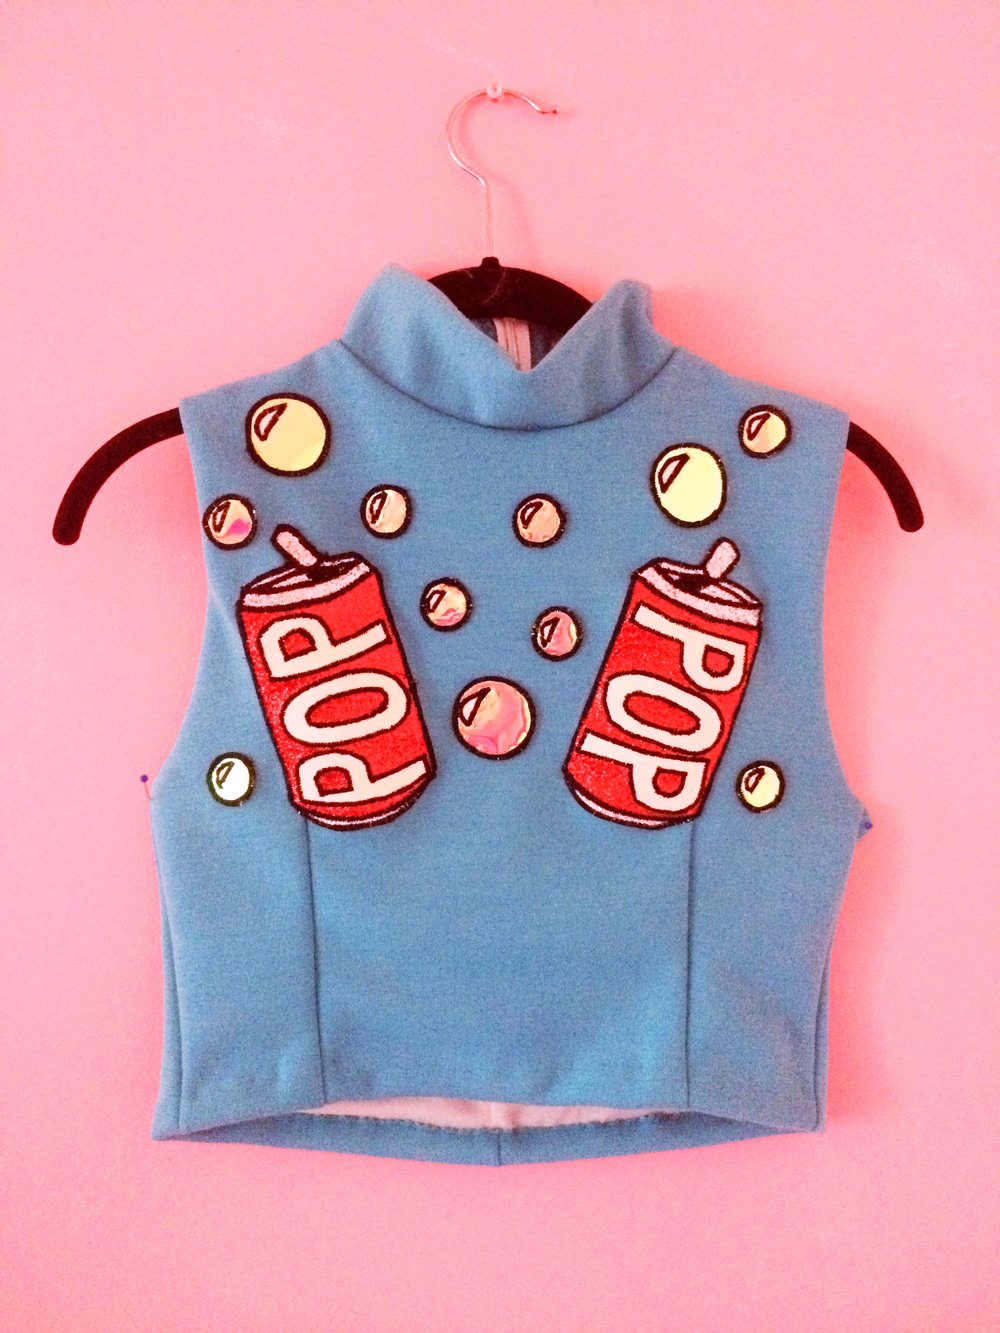 2016 Soda Pop Crop Top created for Coatie Pop